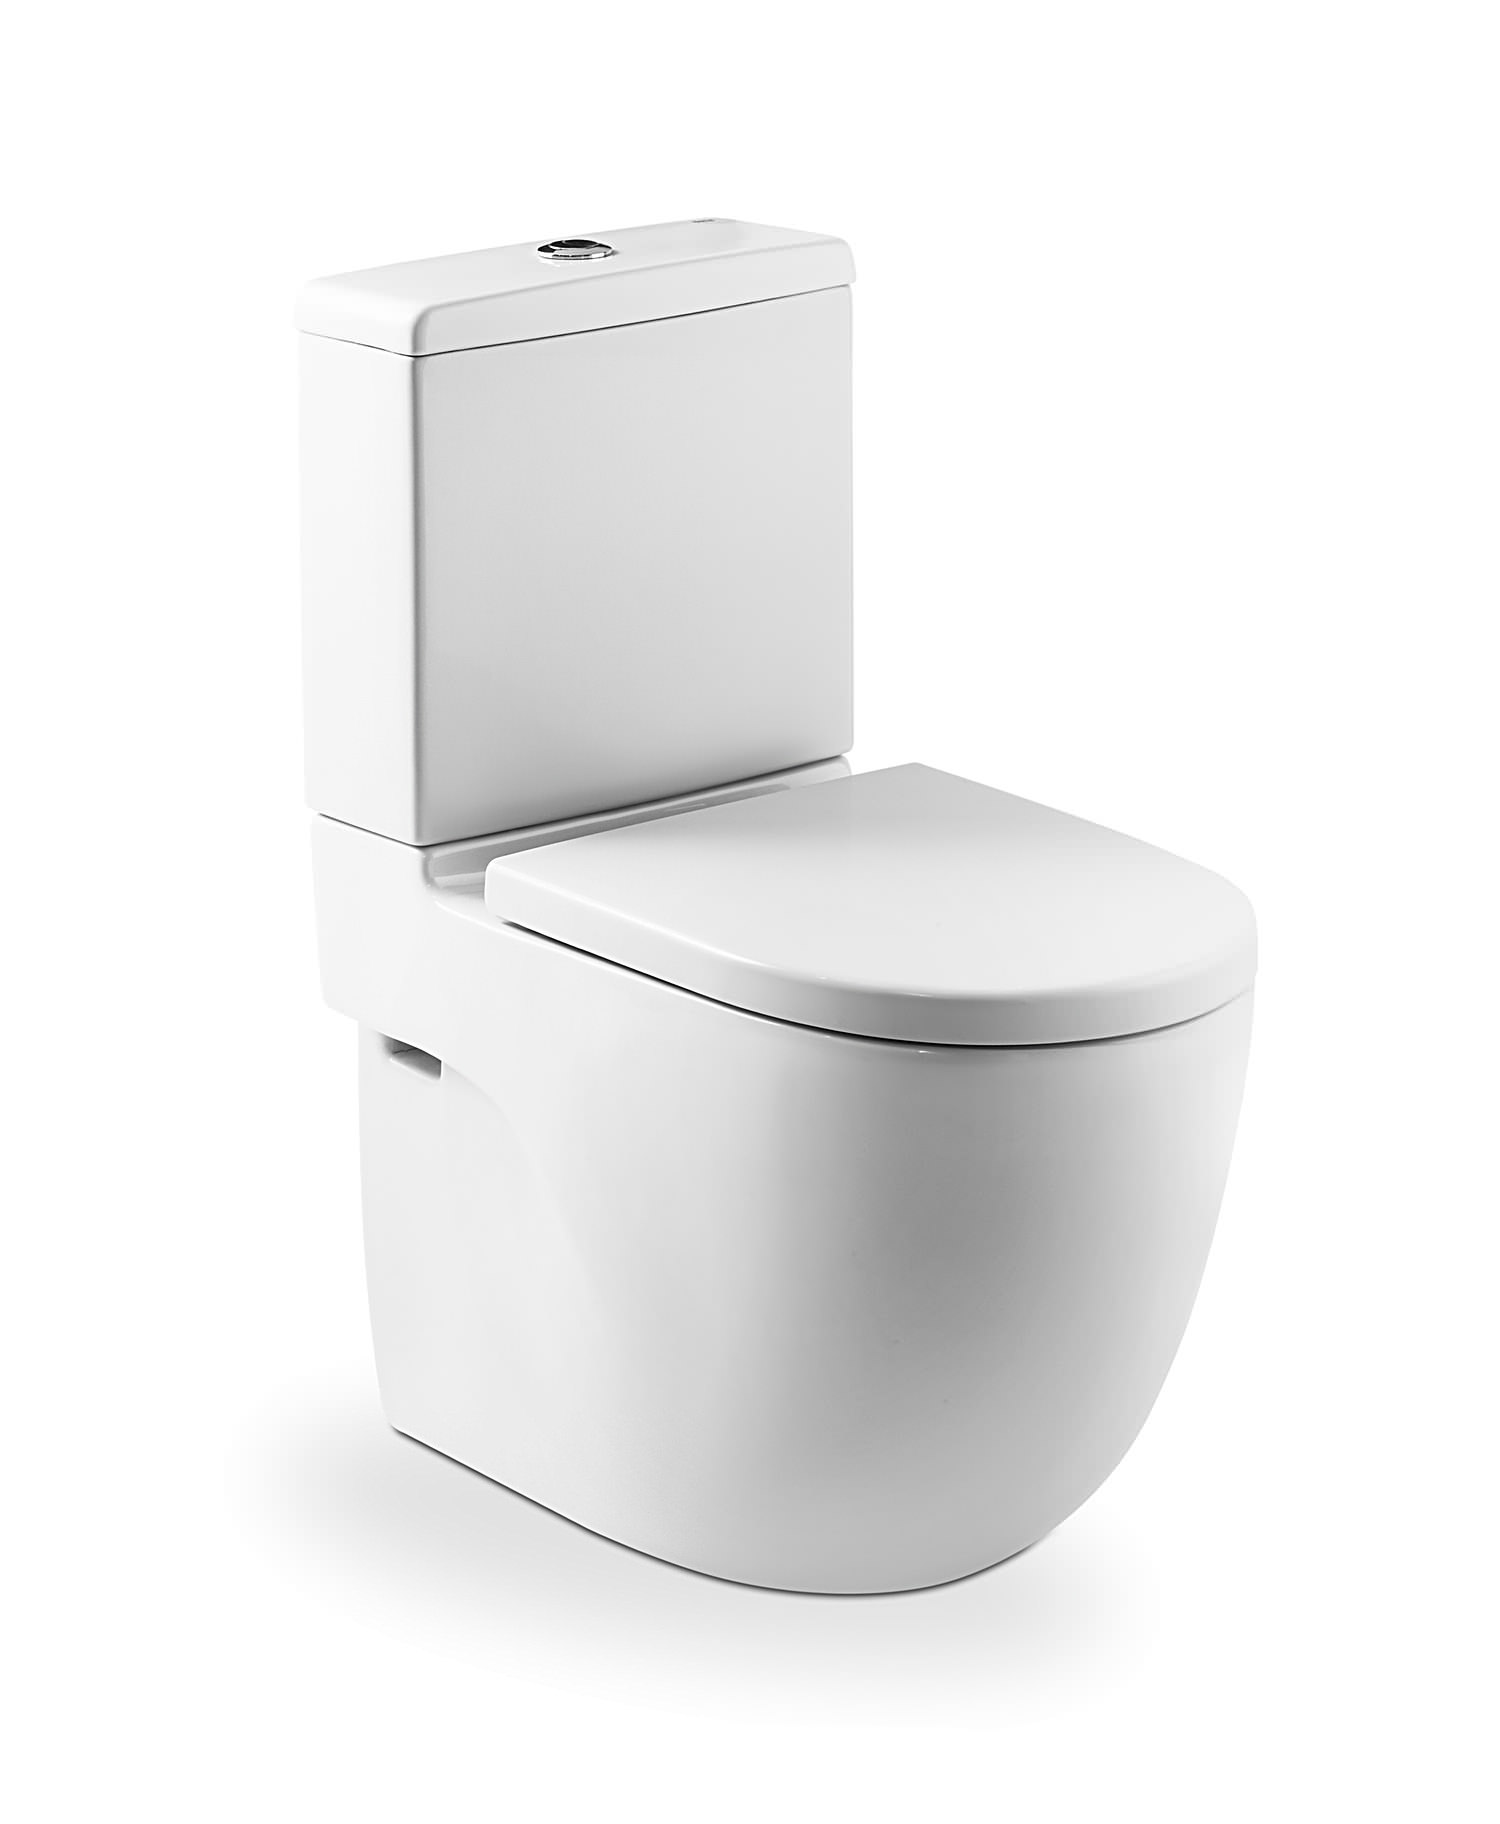 Bidets Duravit Roca Meridian-n Compact Back To Wall Wc Set 600mm | 342248000